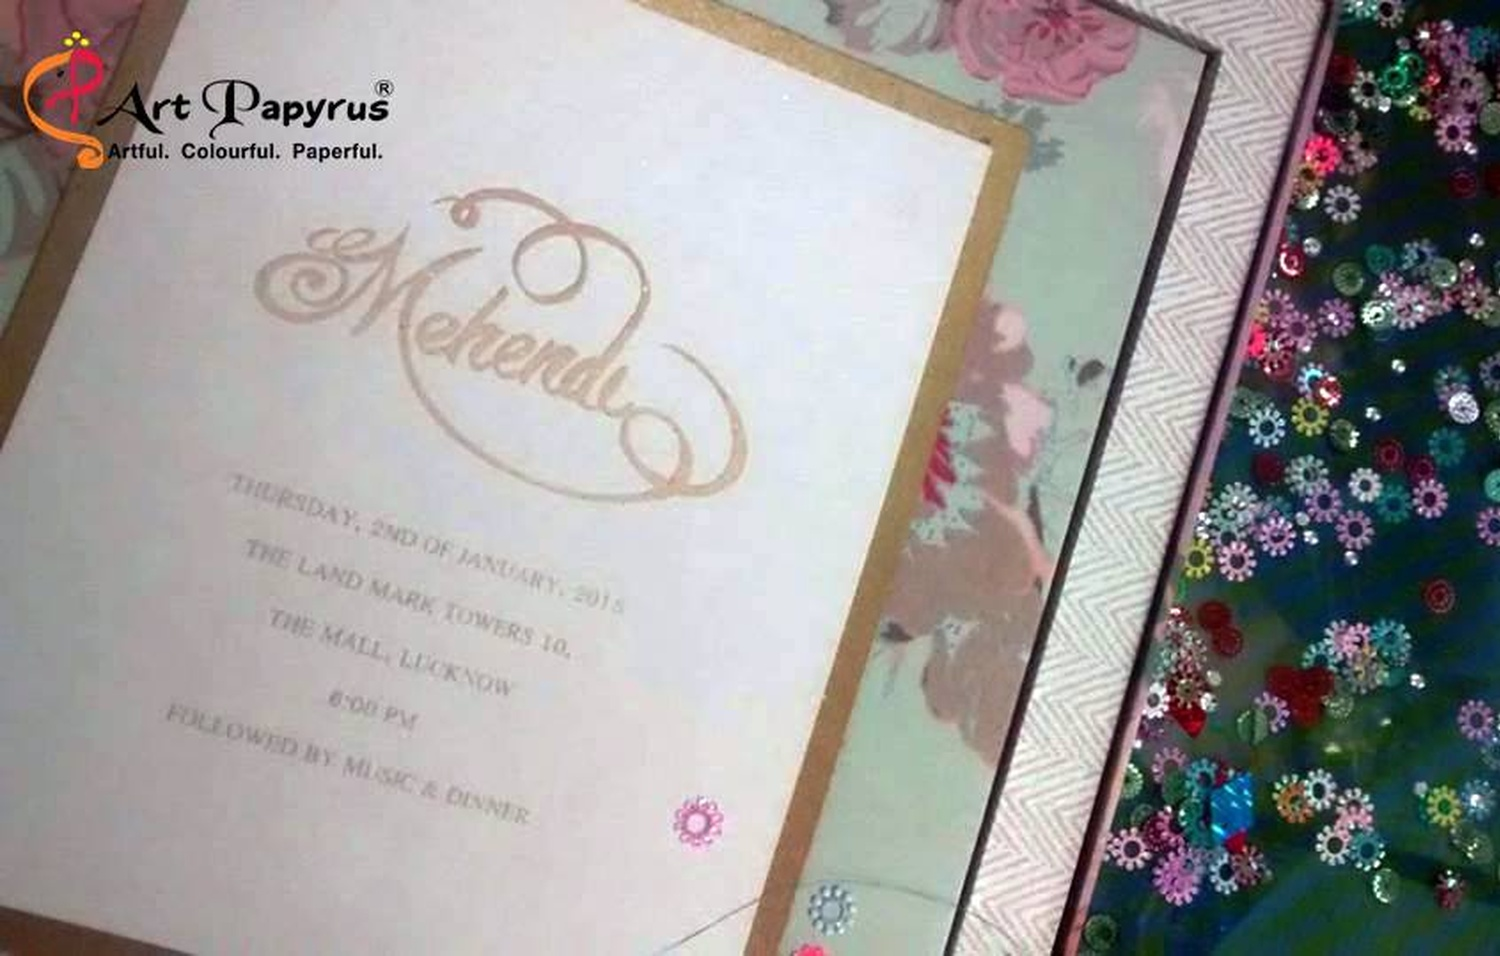 Papyrus Wedding Invitations: Art Papyrus, Wedding Invitation Card In Delhi